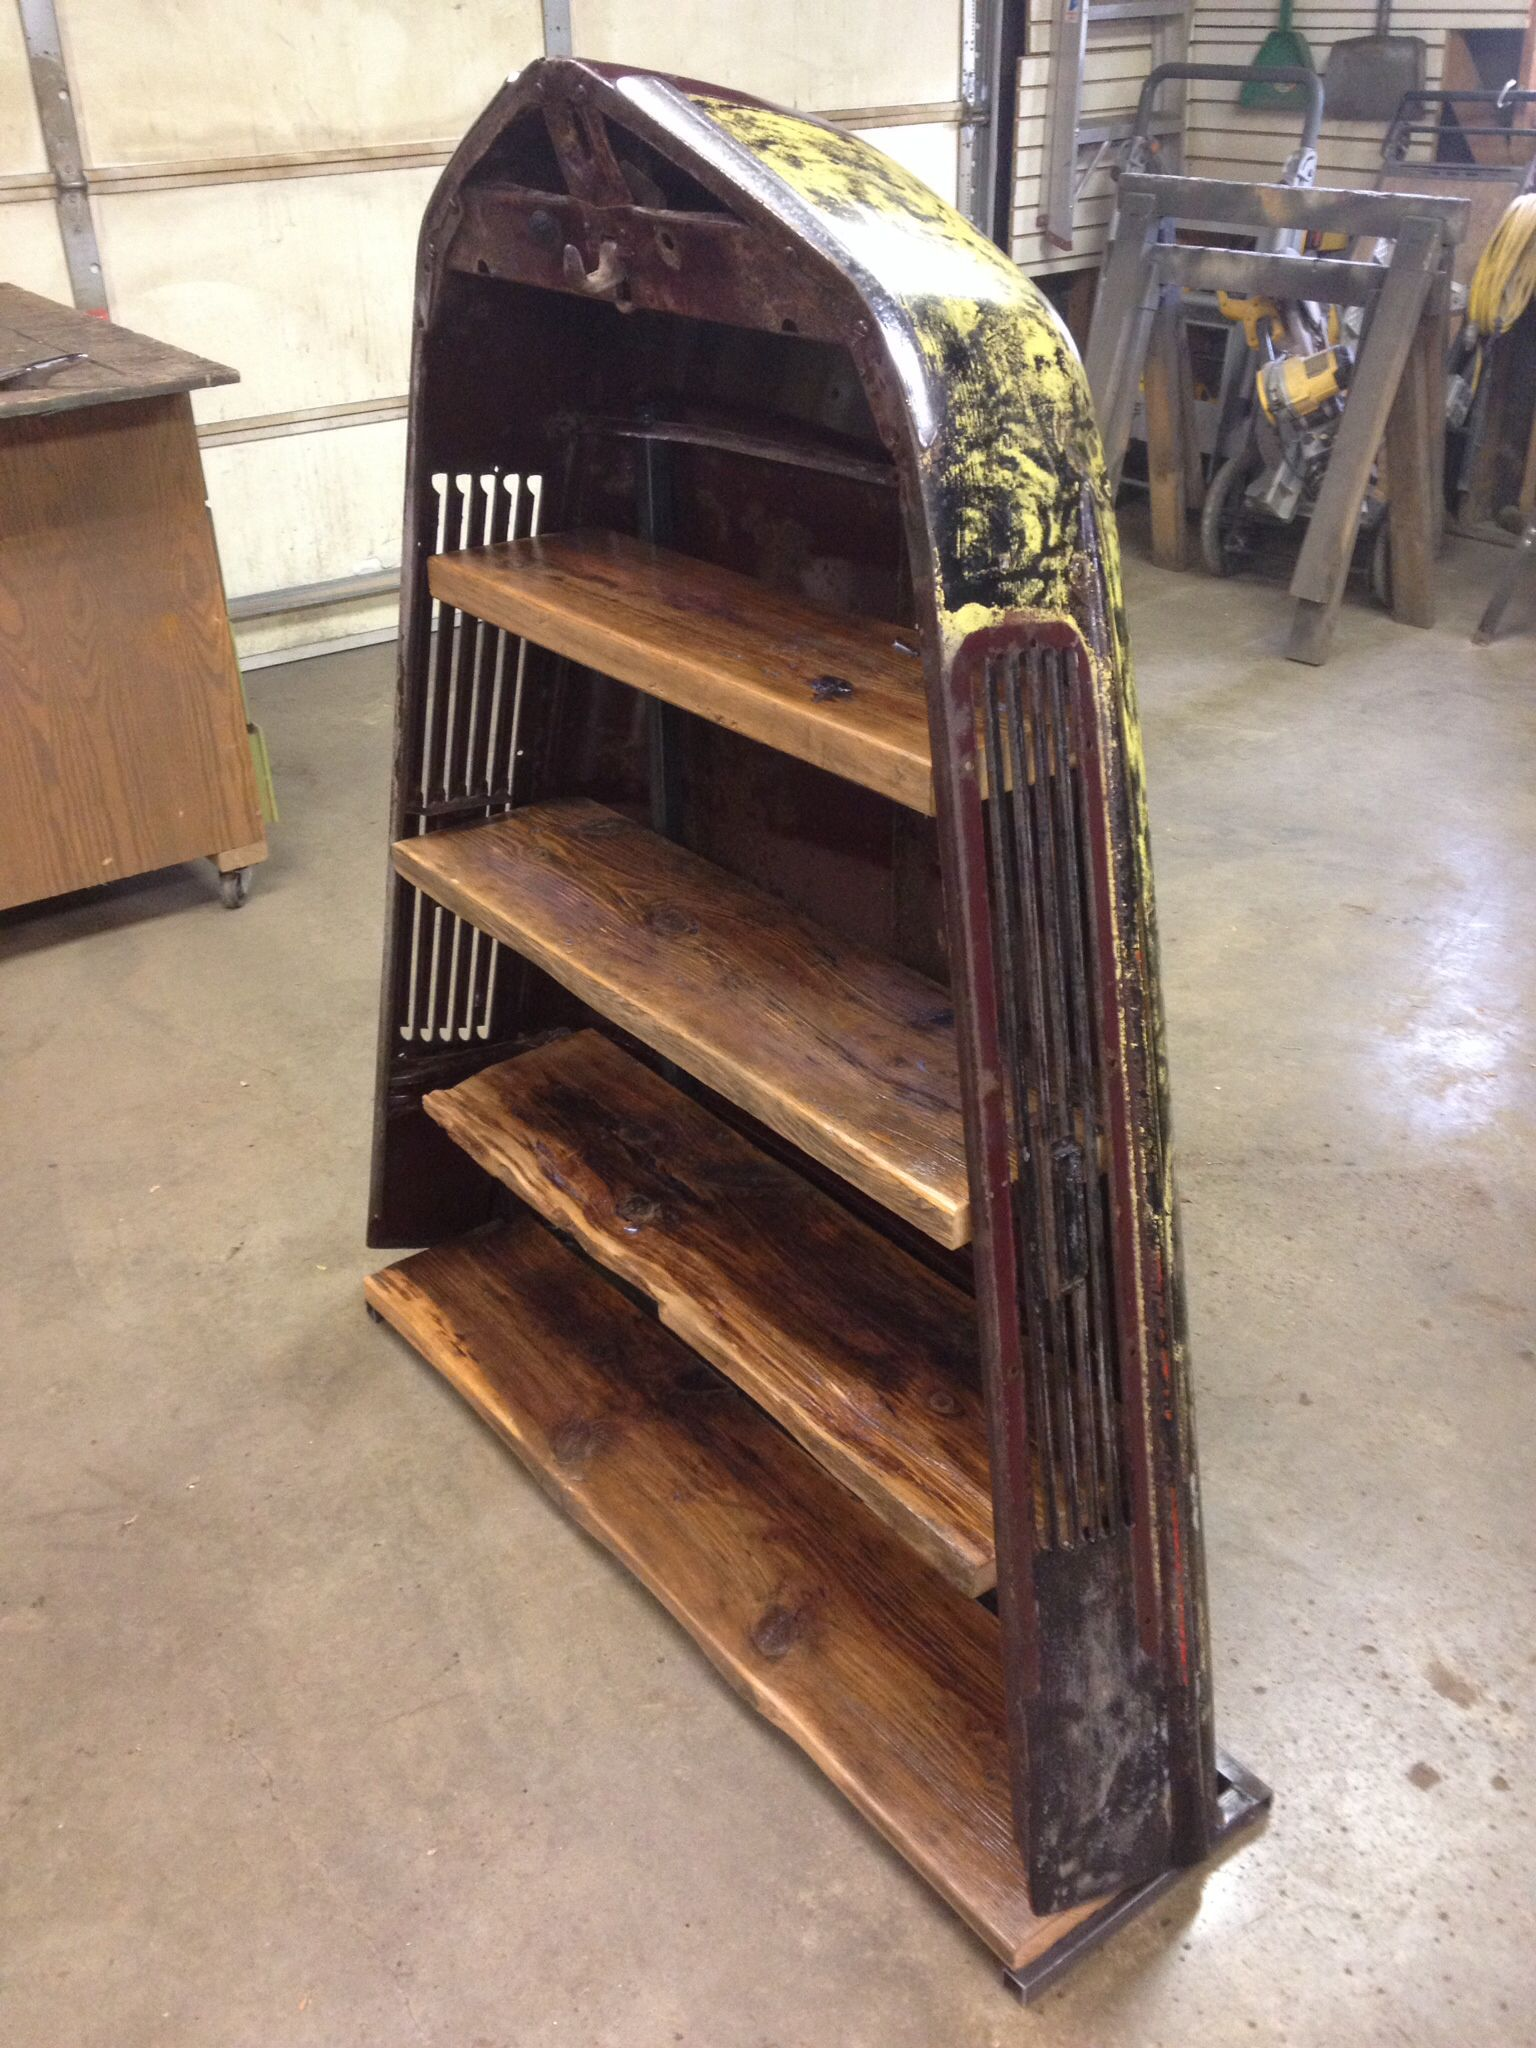 1941 Ford Tuck Hood Turned Into A Shelving Unit For Sale